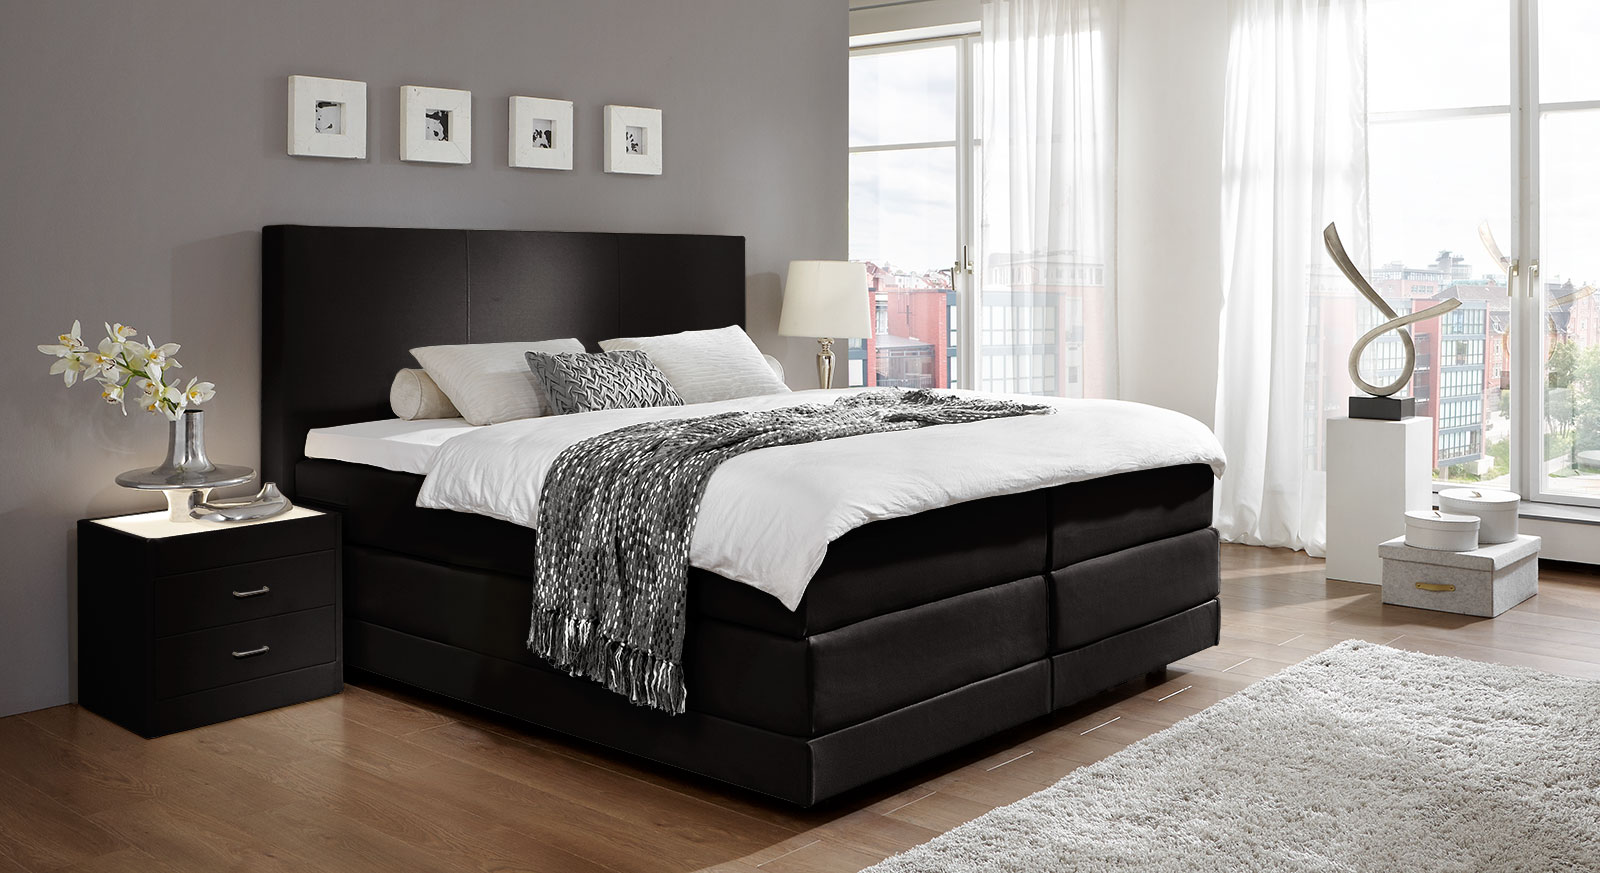 boxspringbett dubai u erst hochwertiges boxspringbett. Black Bedroom Furniture Sets. Home Design Ideas